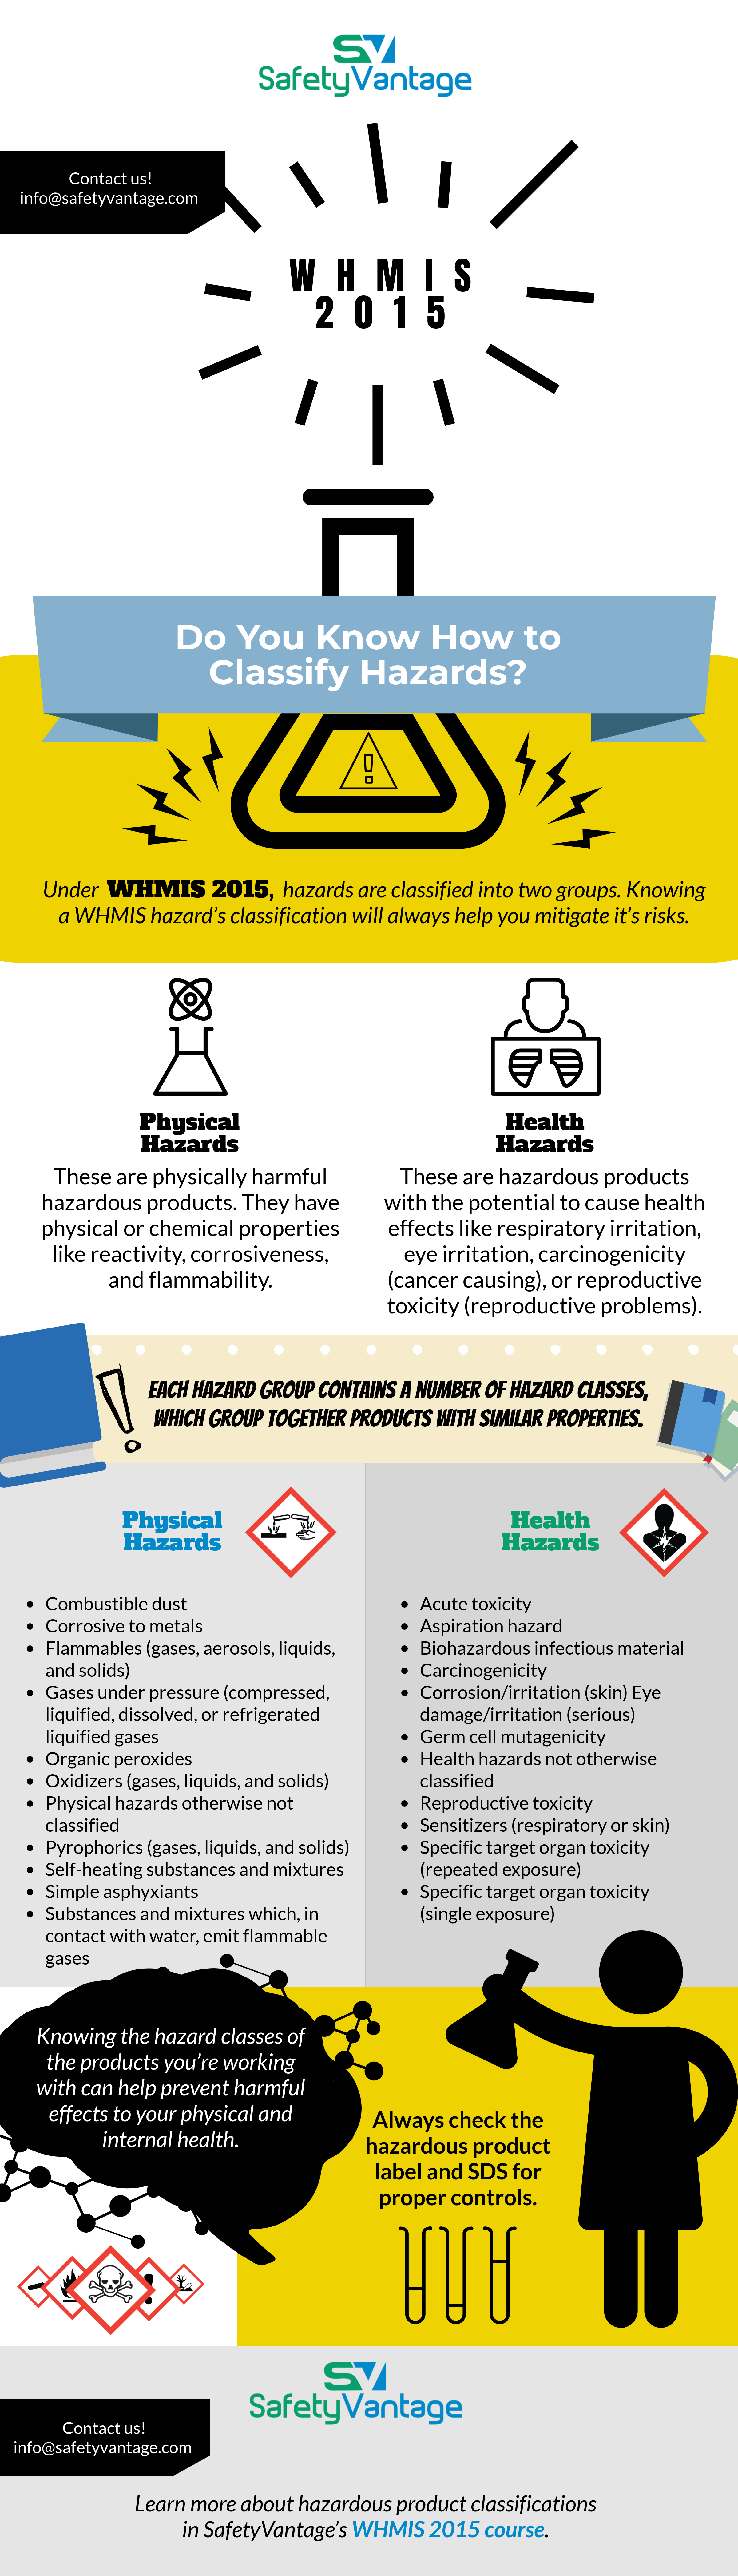 InfoGraphic - Under WHMIS 2015, hazards are classified into two groups. Knowing a WHMIS hazard's classification will always help you mitigate it's risks.